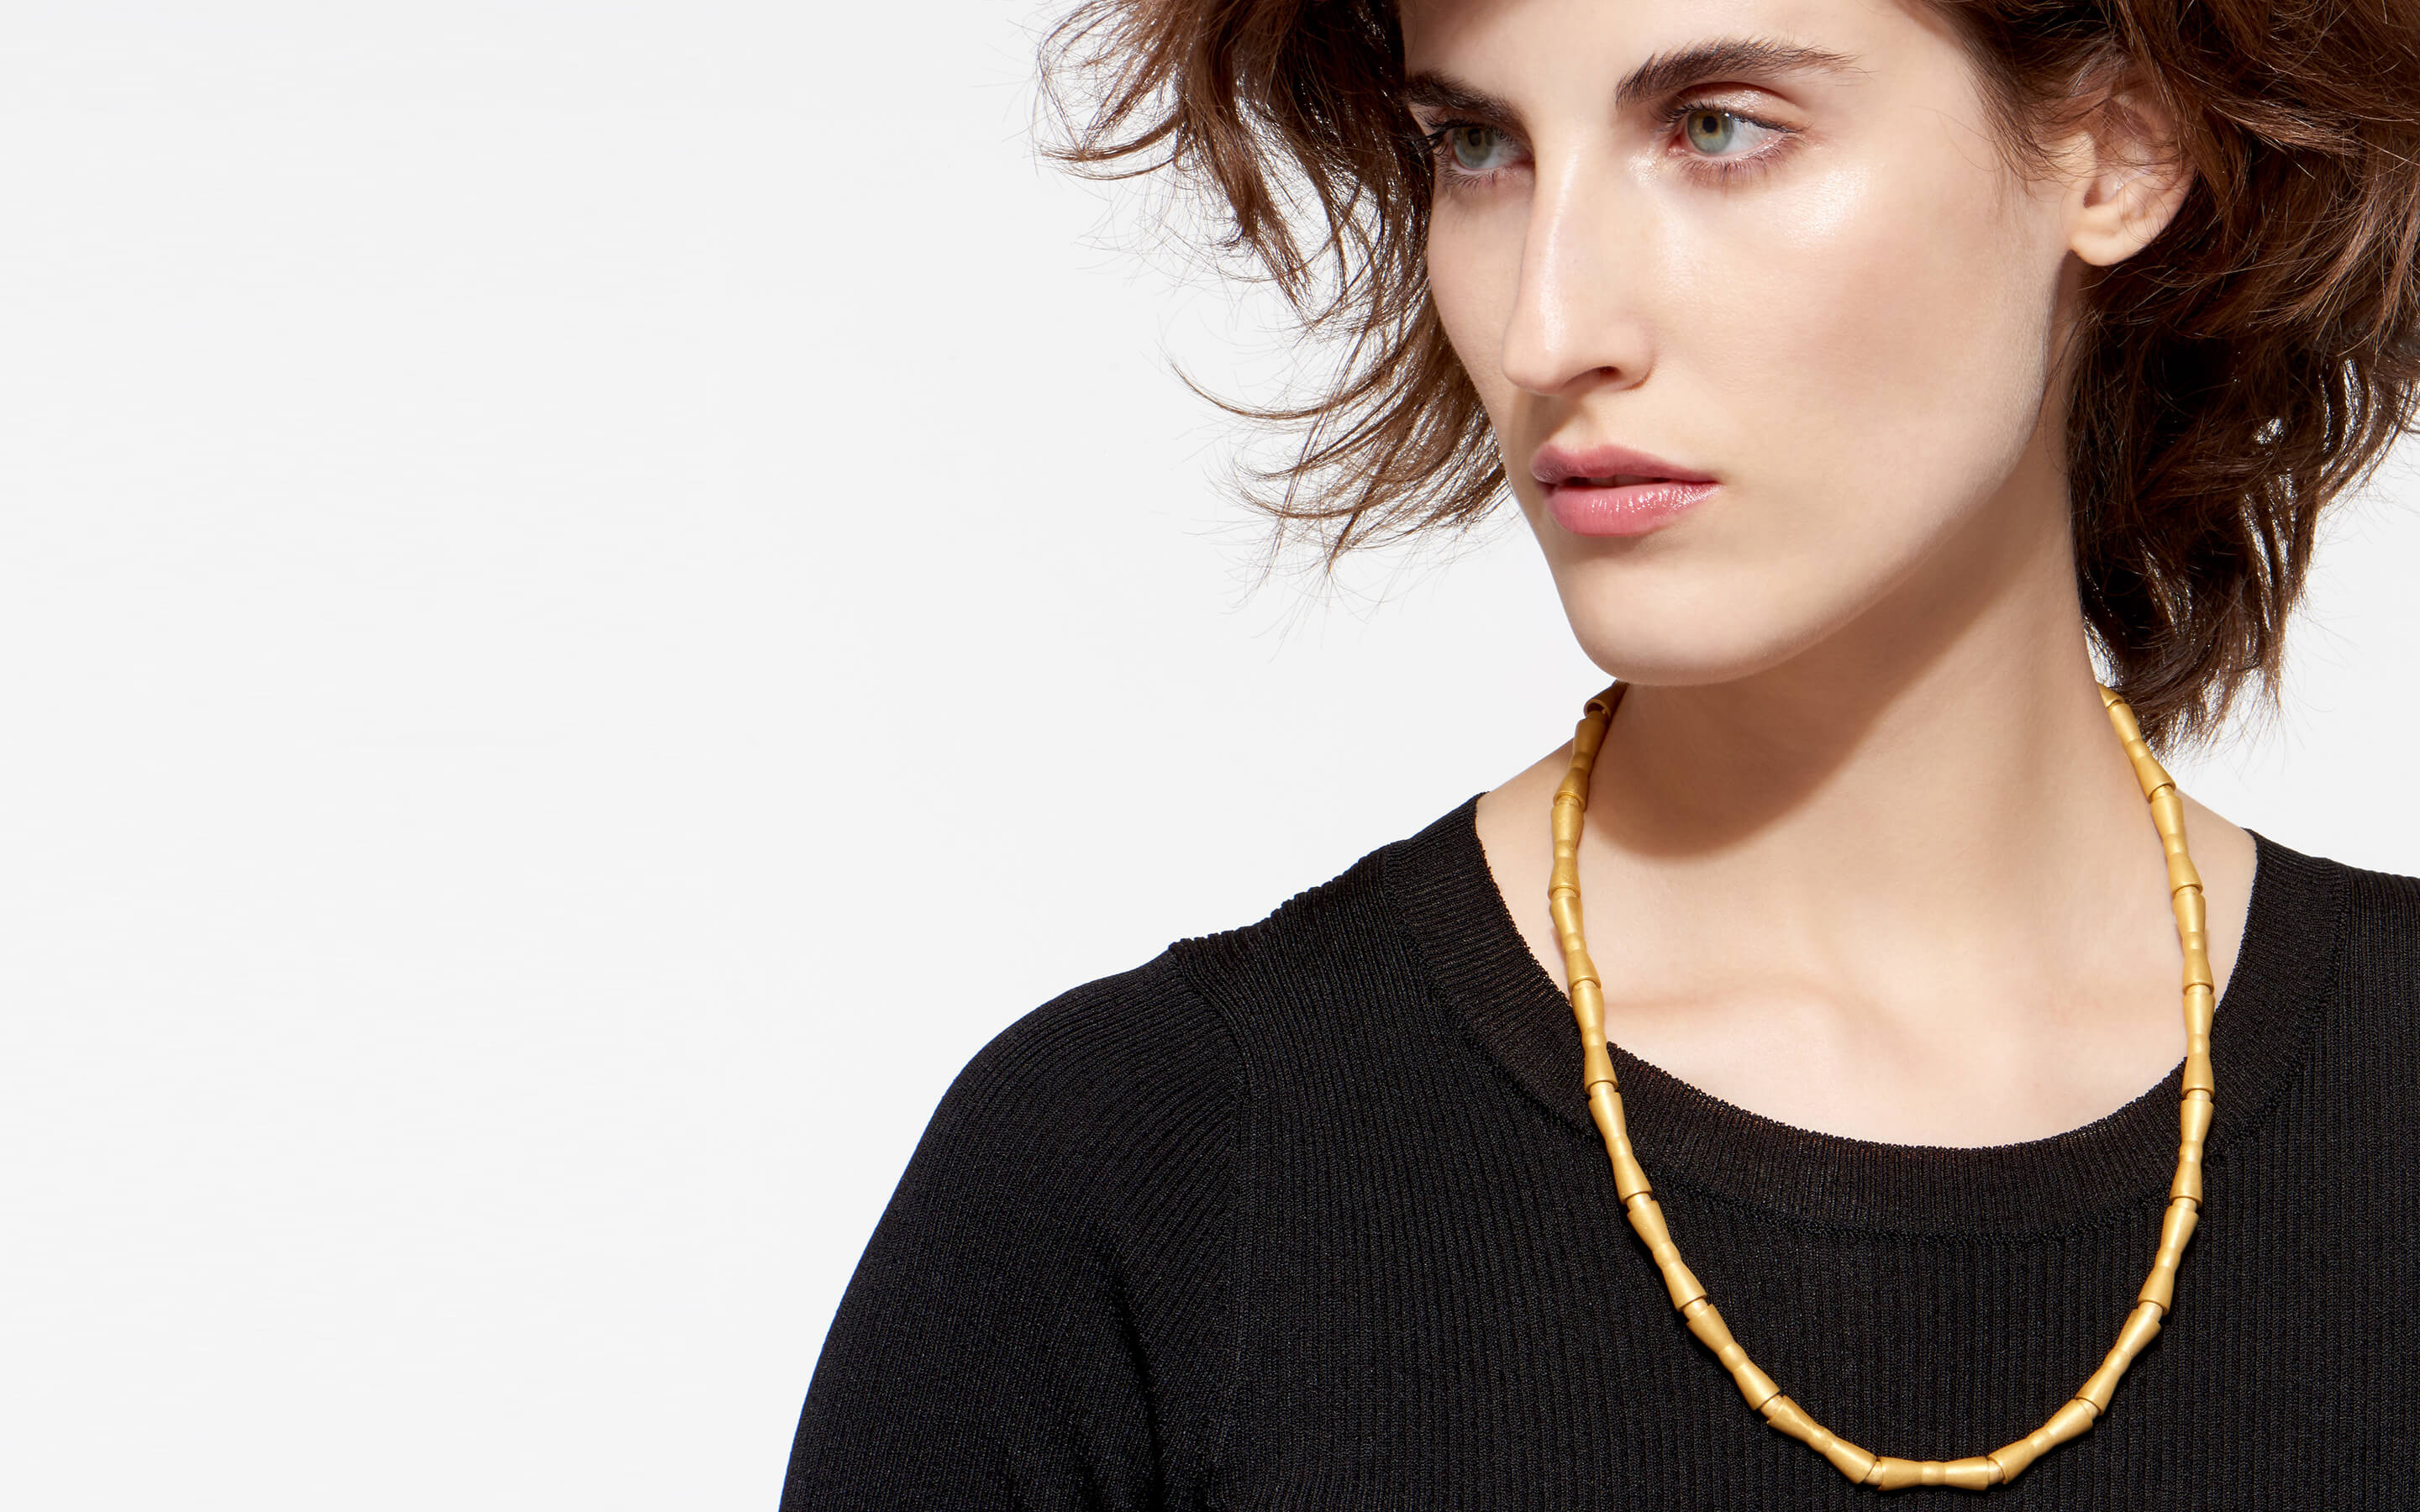 striking woman modeling 22 karat gold necklace containing long concave beads